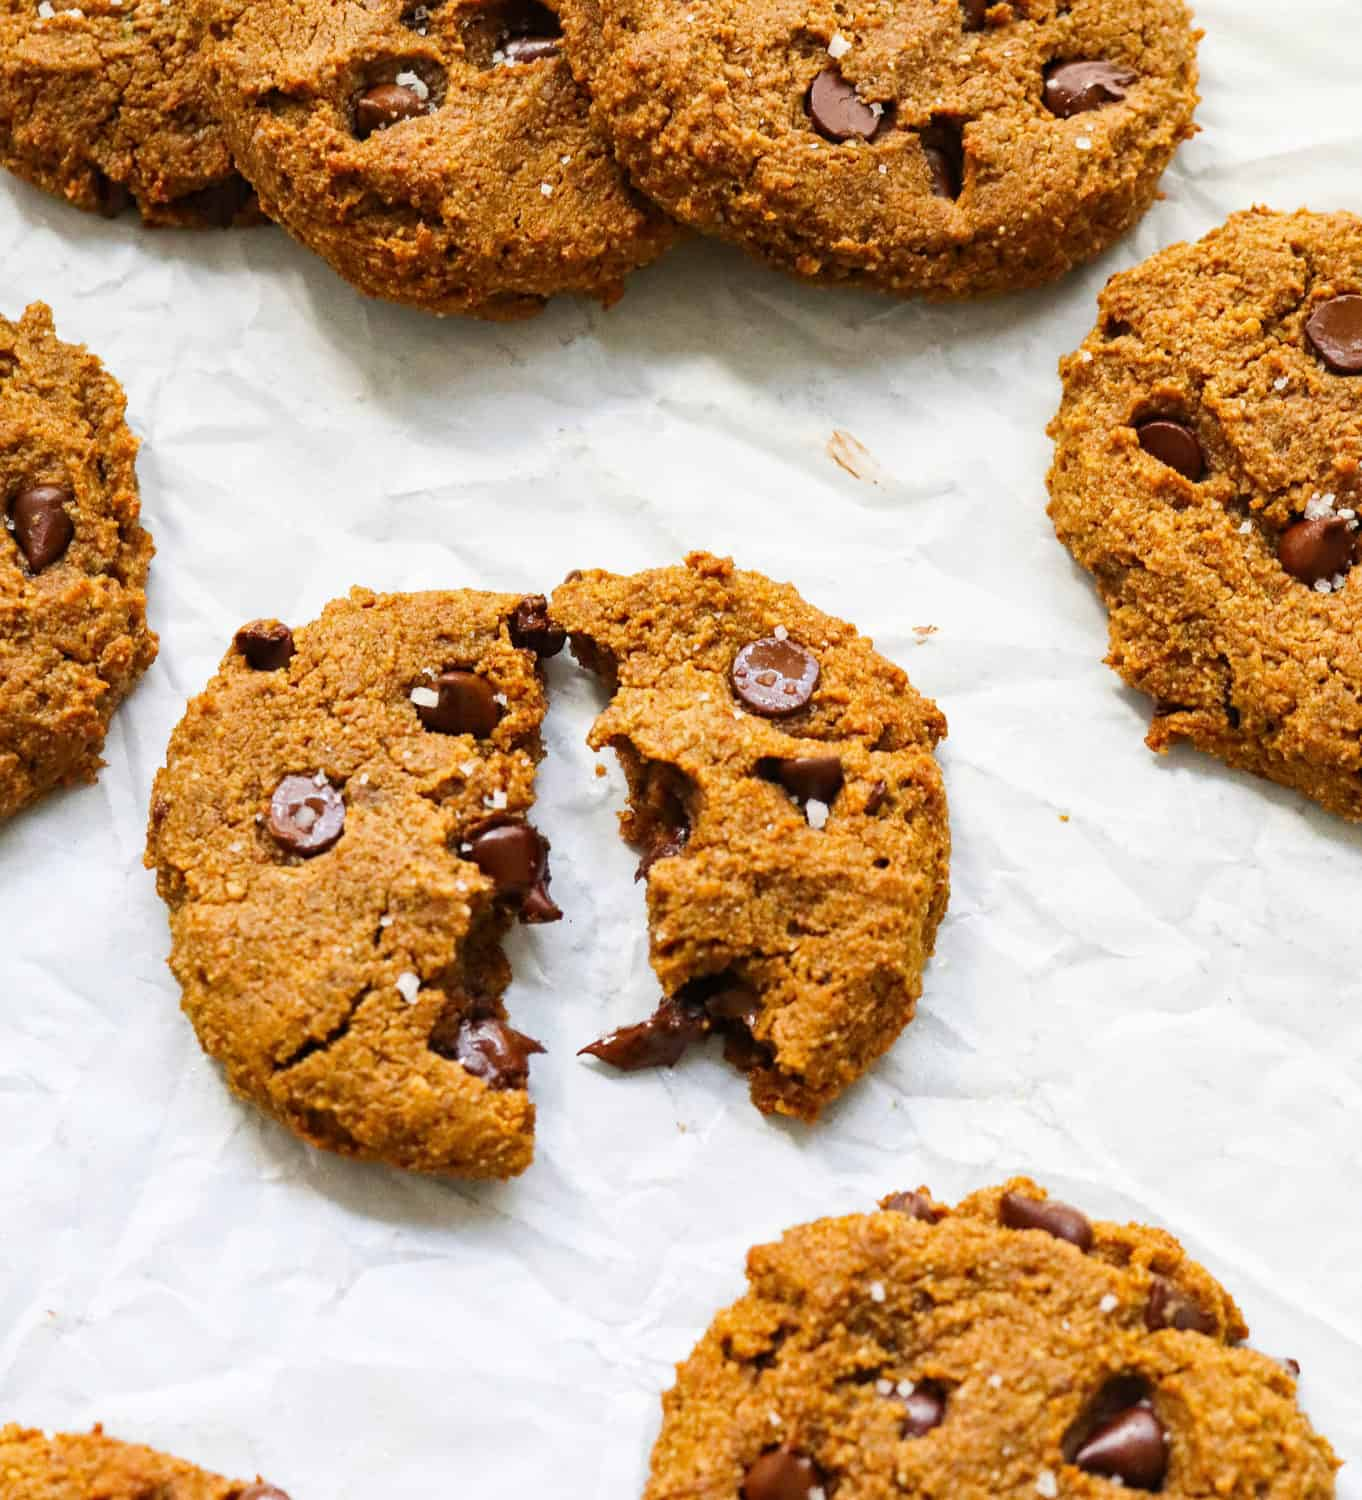 Broken chocolate chip cookies with more around it